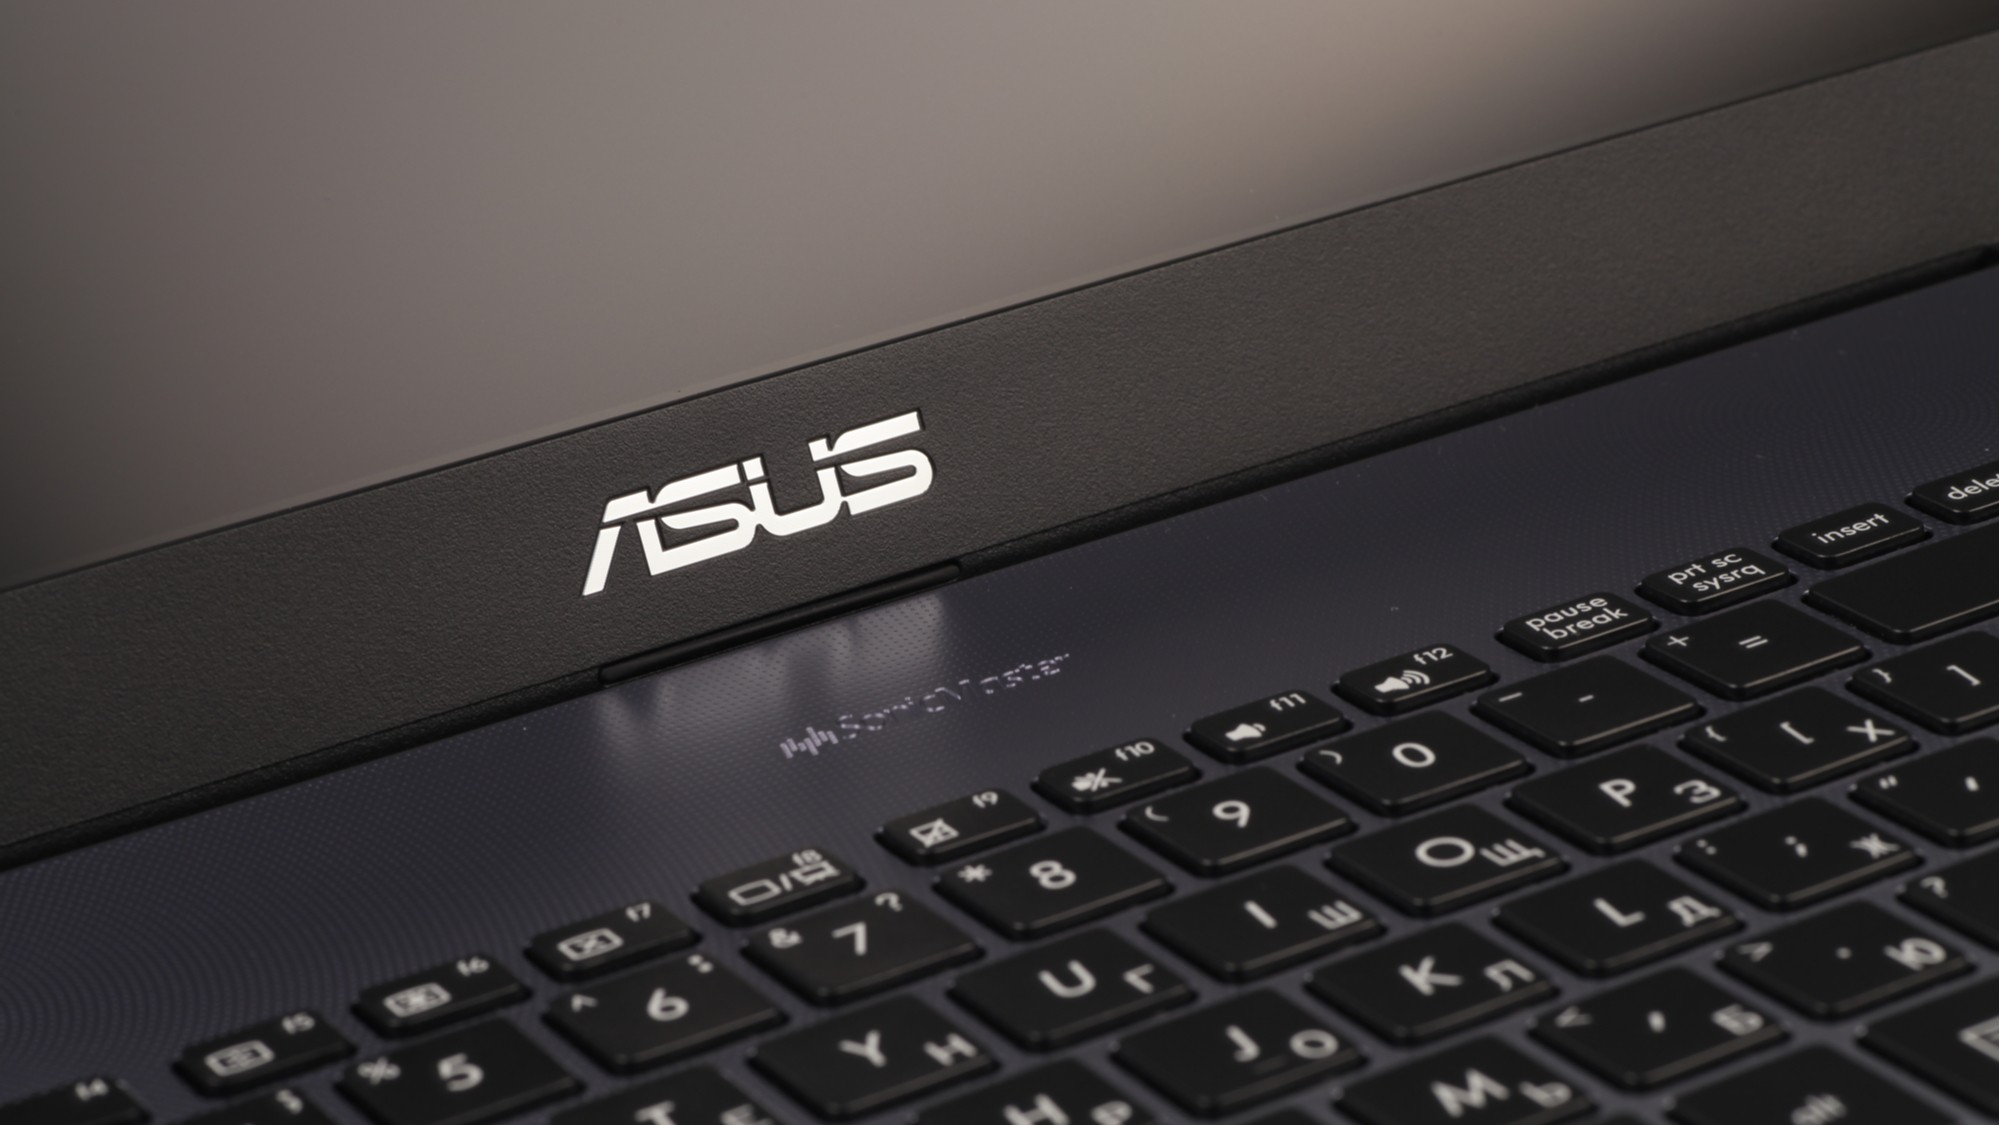 Hackers hijacked ASUS software updates, installed backdoors on thousands of computers